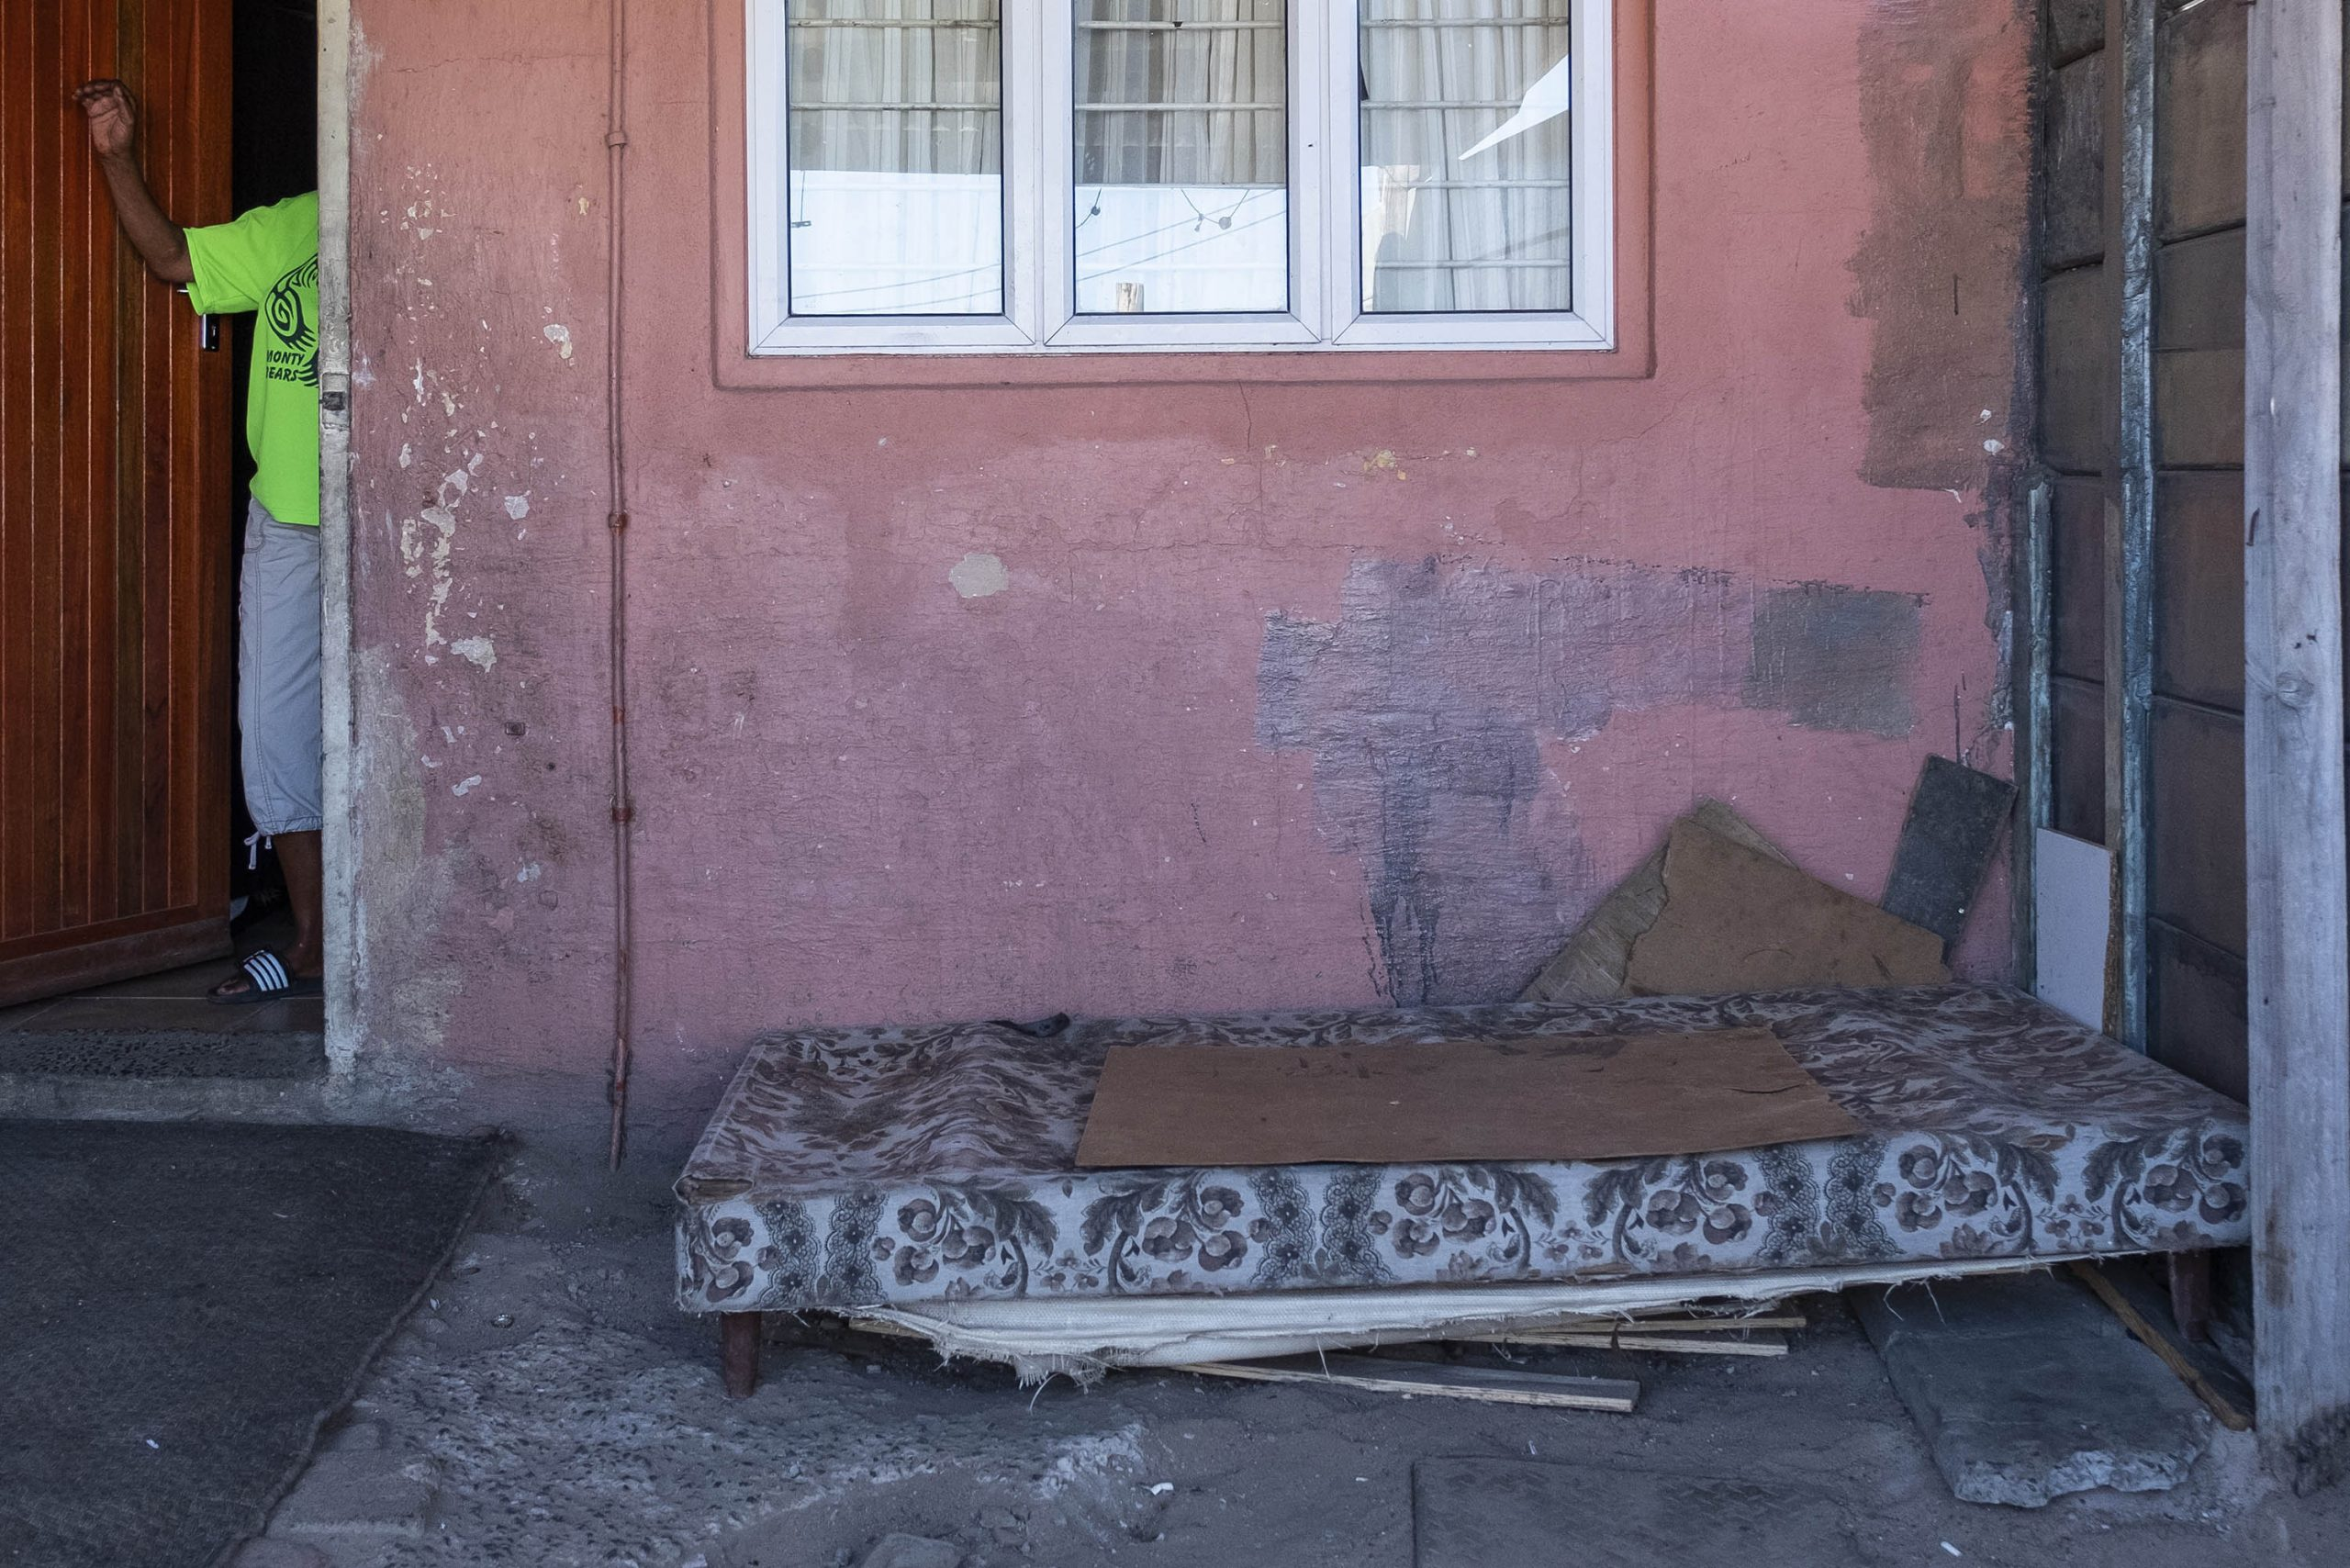 2 April 2020: When Petrus Miggels got home after being assaulted, he told Valene Meintjies what had happened and went to sit on this mattress that lies on the floor just outside their front door.